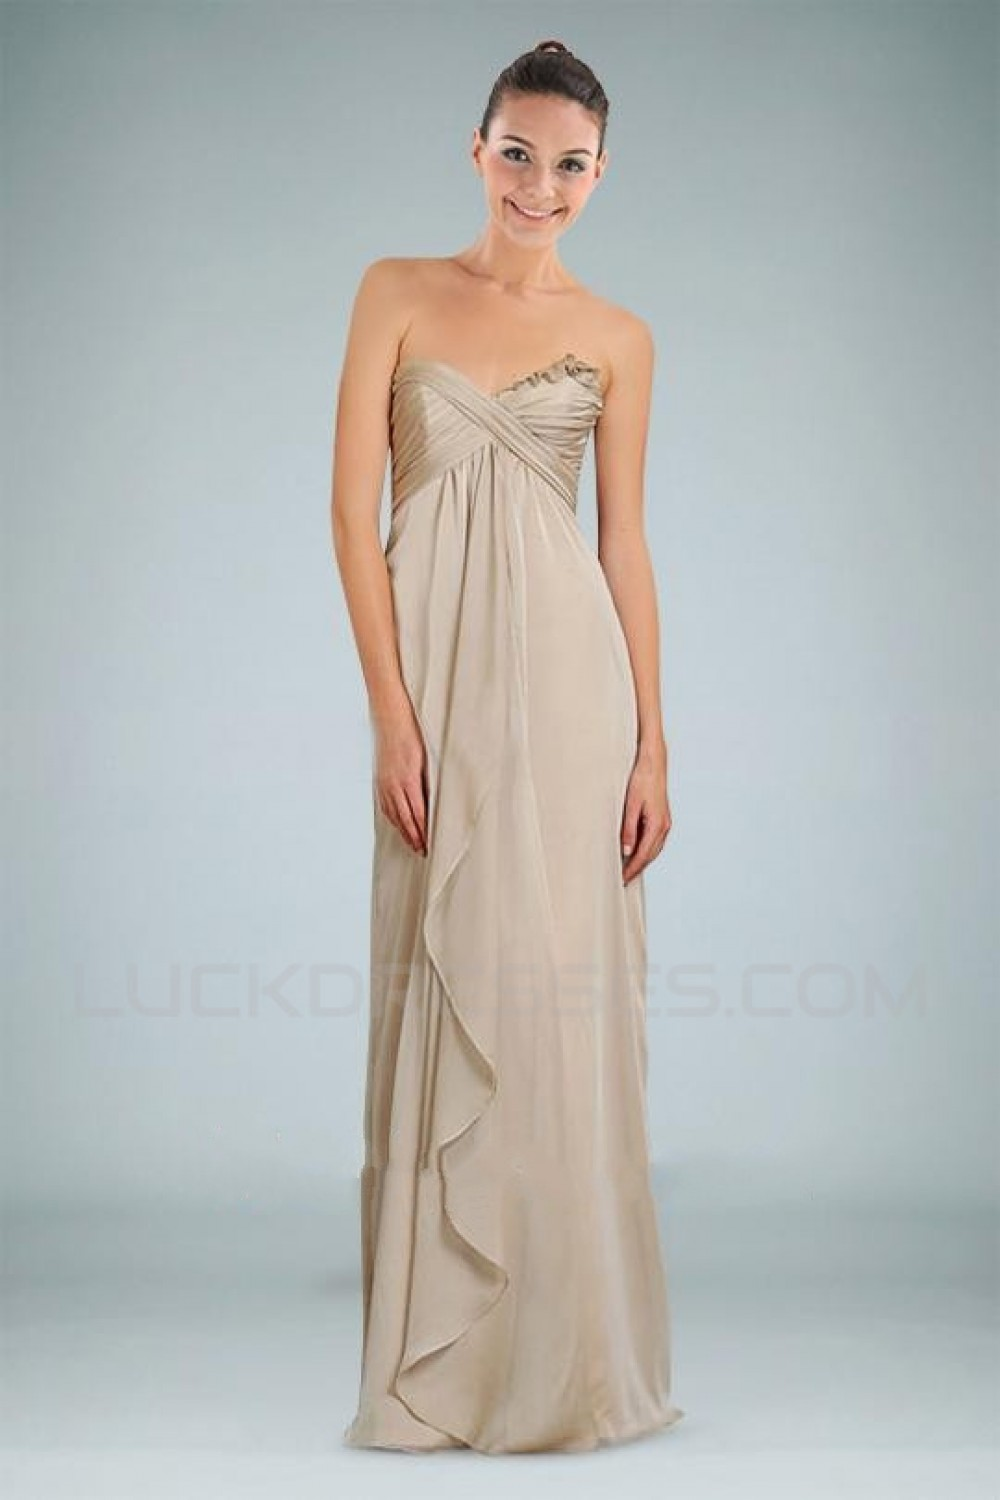 Sweetheart Floor-Length Bridesmaid Dresses/Wedding Party Dresses ...